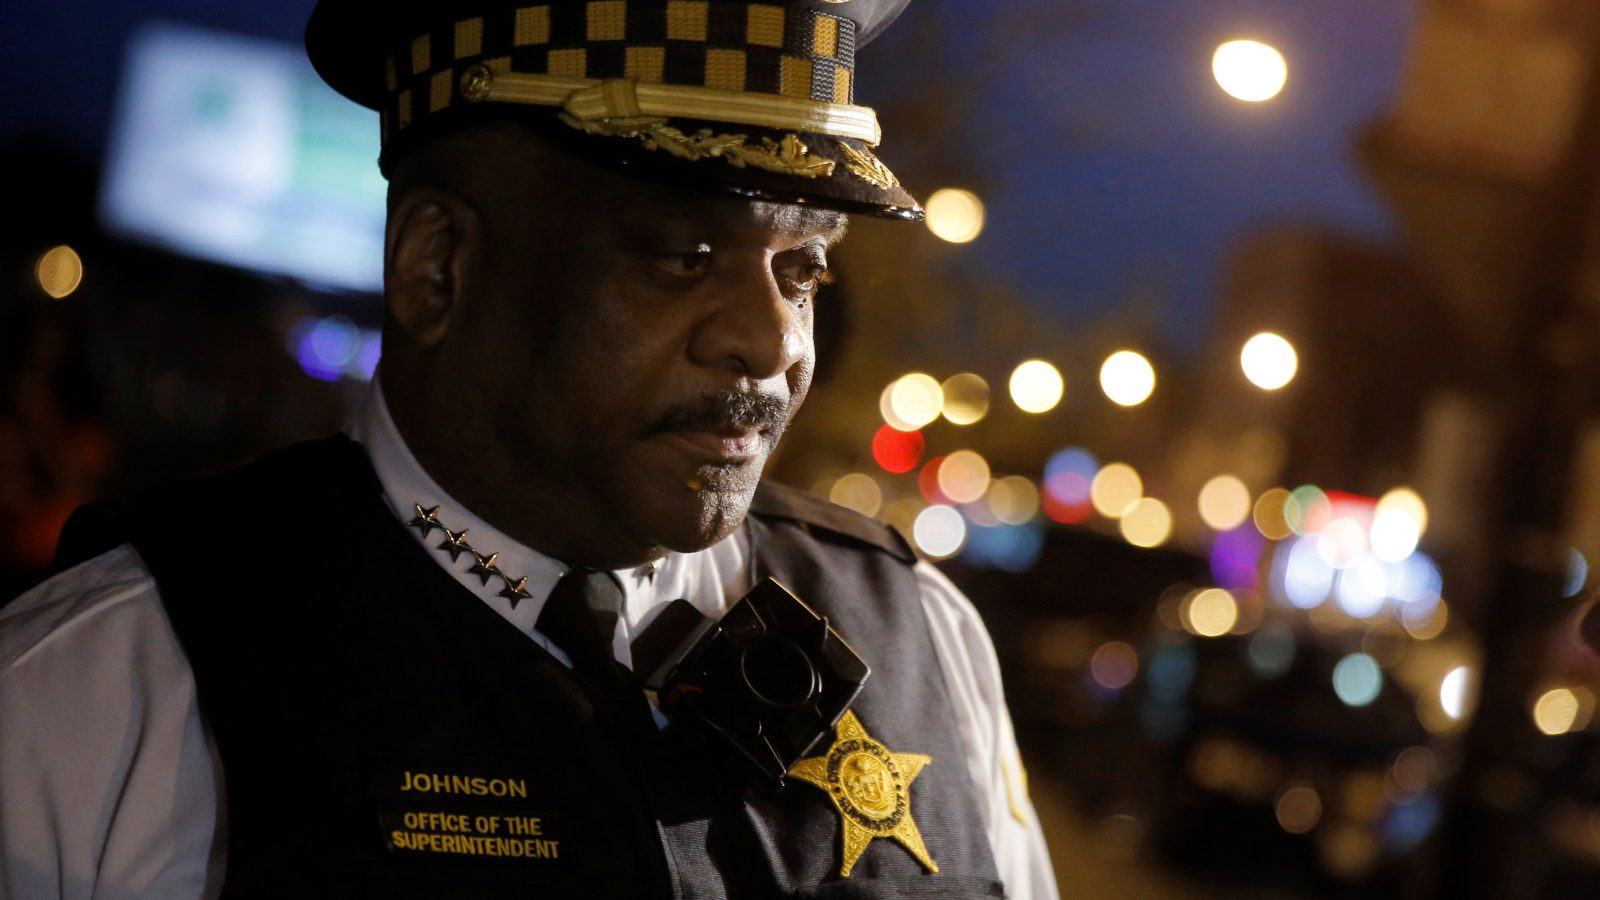 Chicago Police Superintendent Eddie Johnson listens to a question about patrolling a neighborhood while wearing a body camera in Chicago, Illinois, United States, May 6, 2016.     REUTERS/Jim Young  - RTX2D748